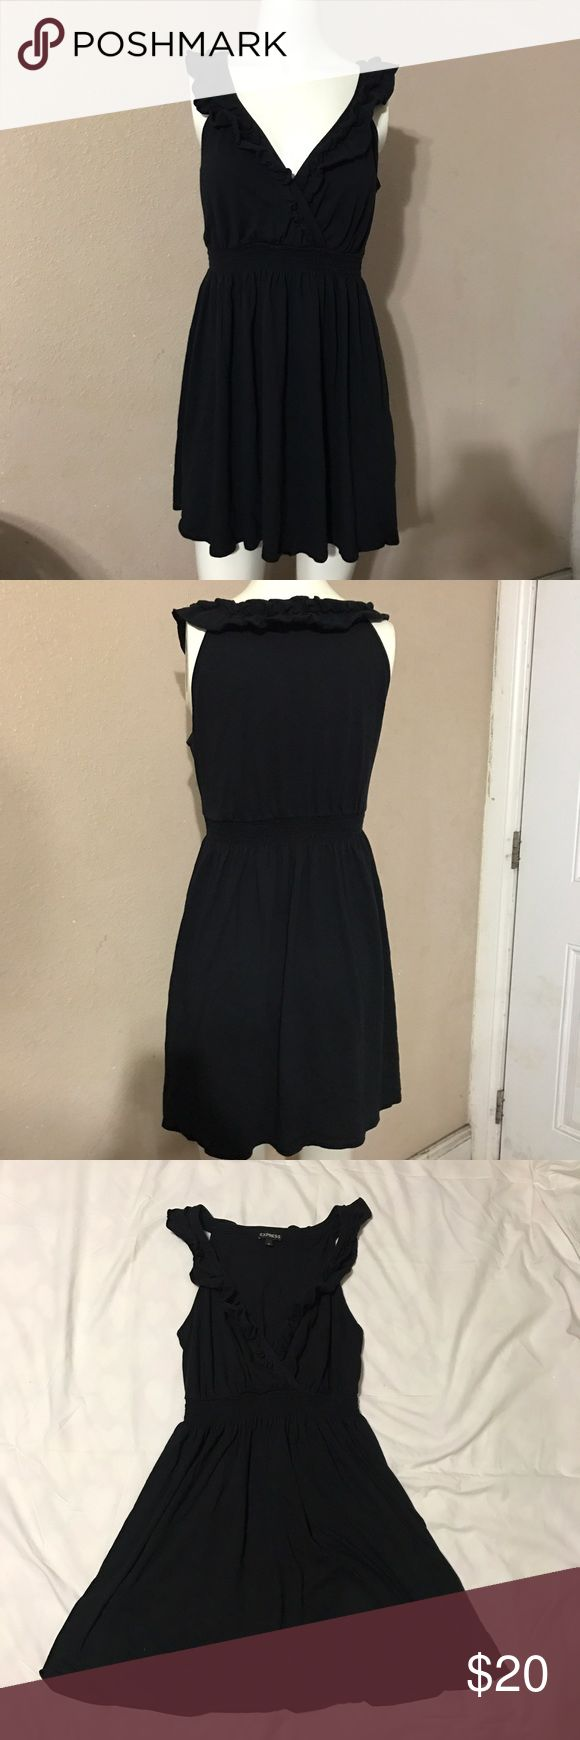 Express Petite Black Dress In great condition! Size Small in petites. Express Dresses